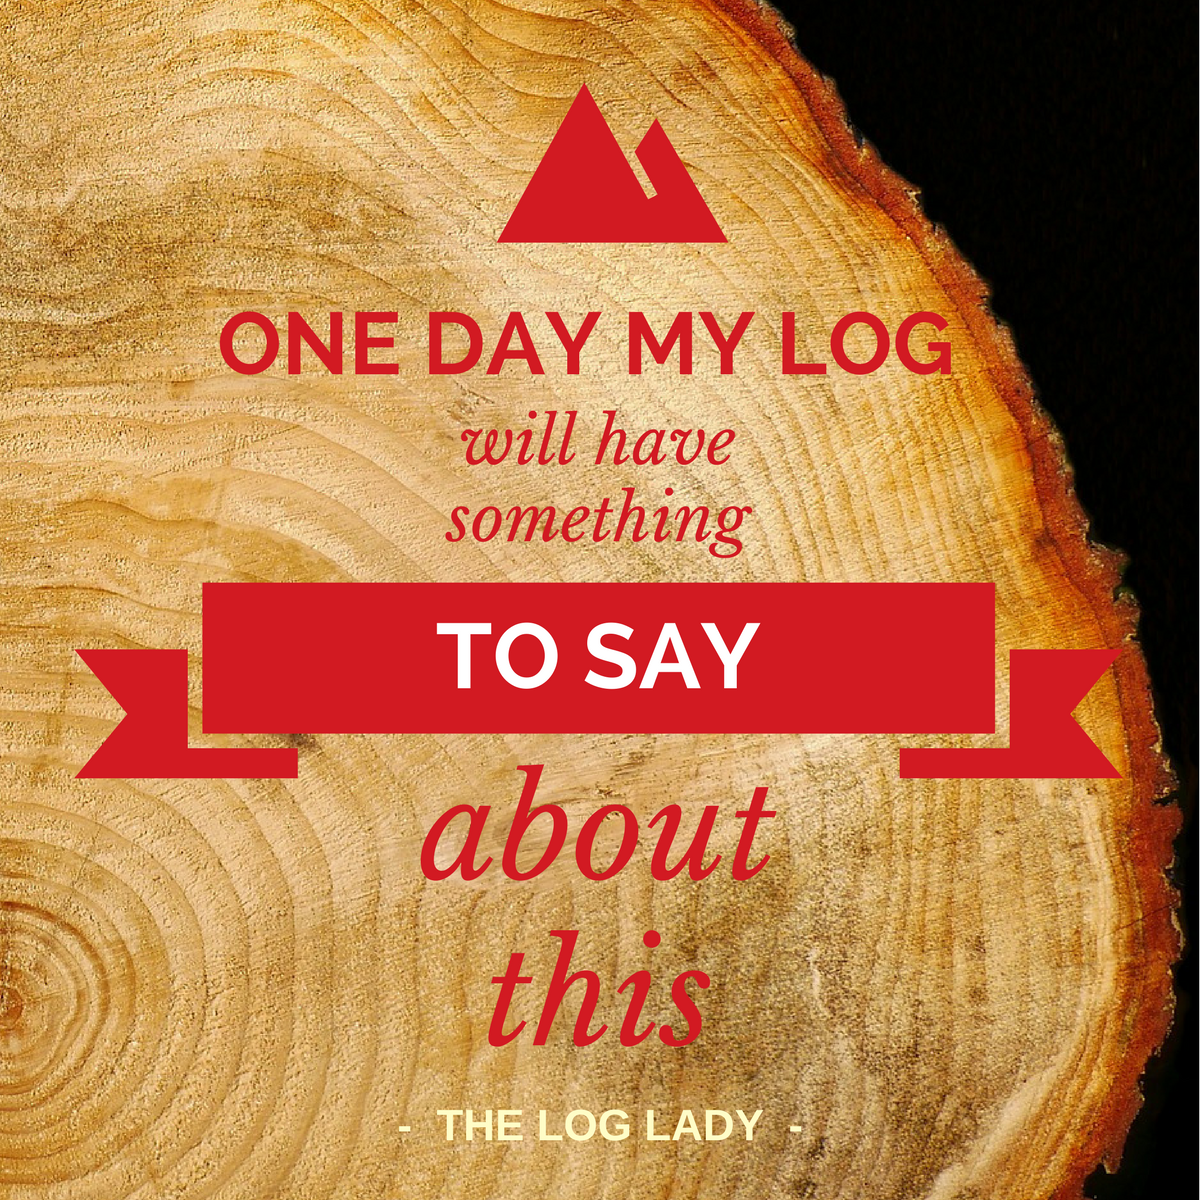 Twin Peaks log lady quote